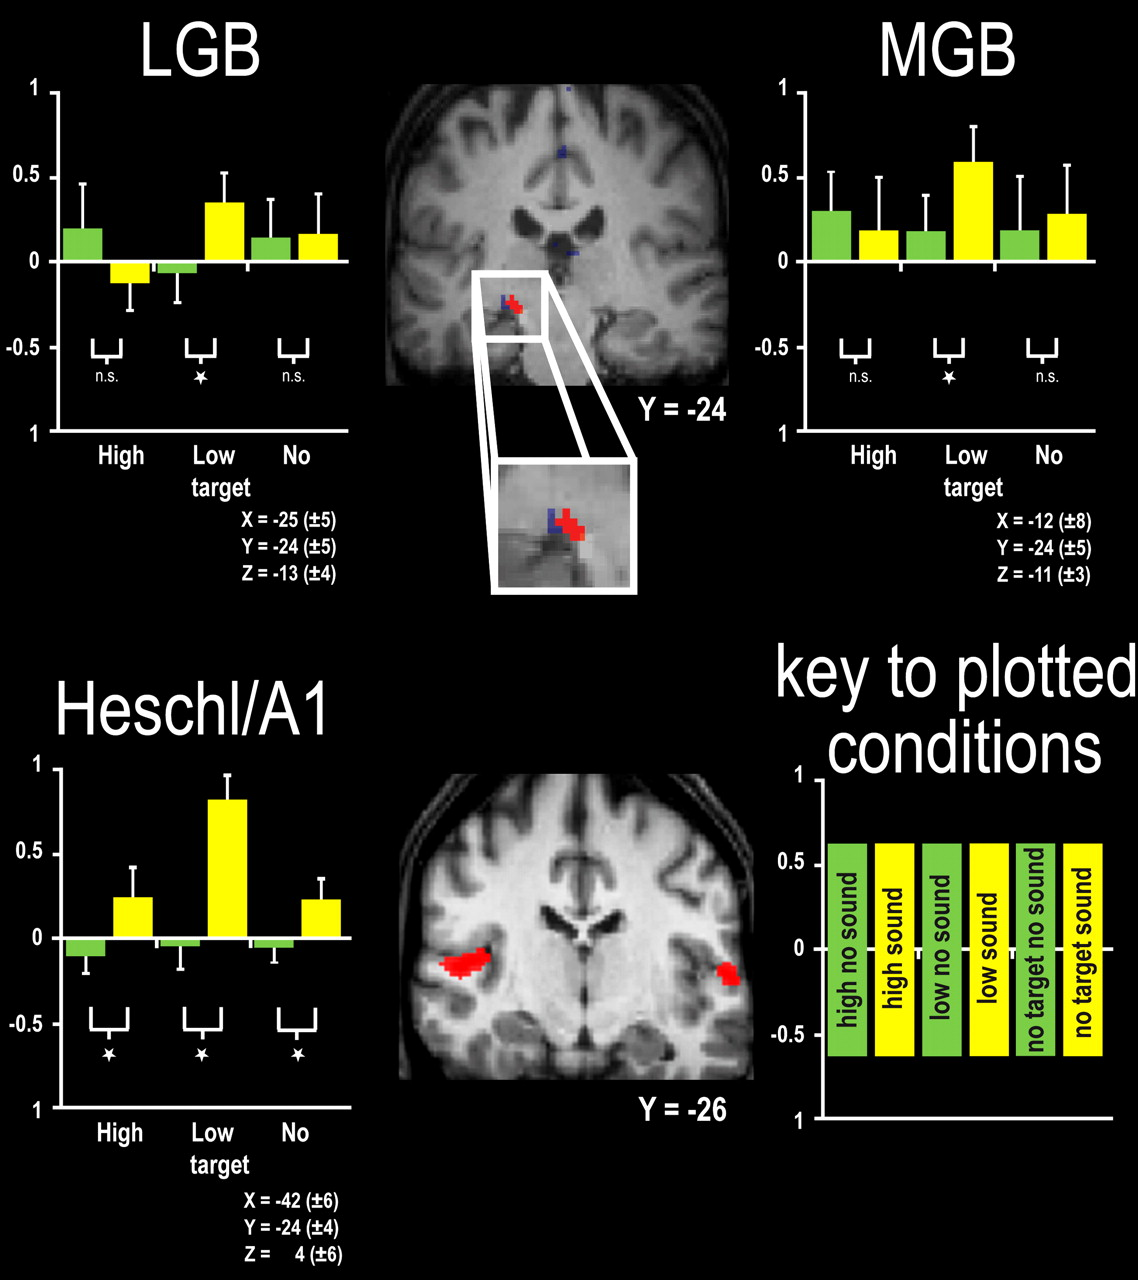 Sound-Induced Enhancement of Low-Intensity Vision